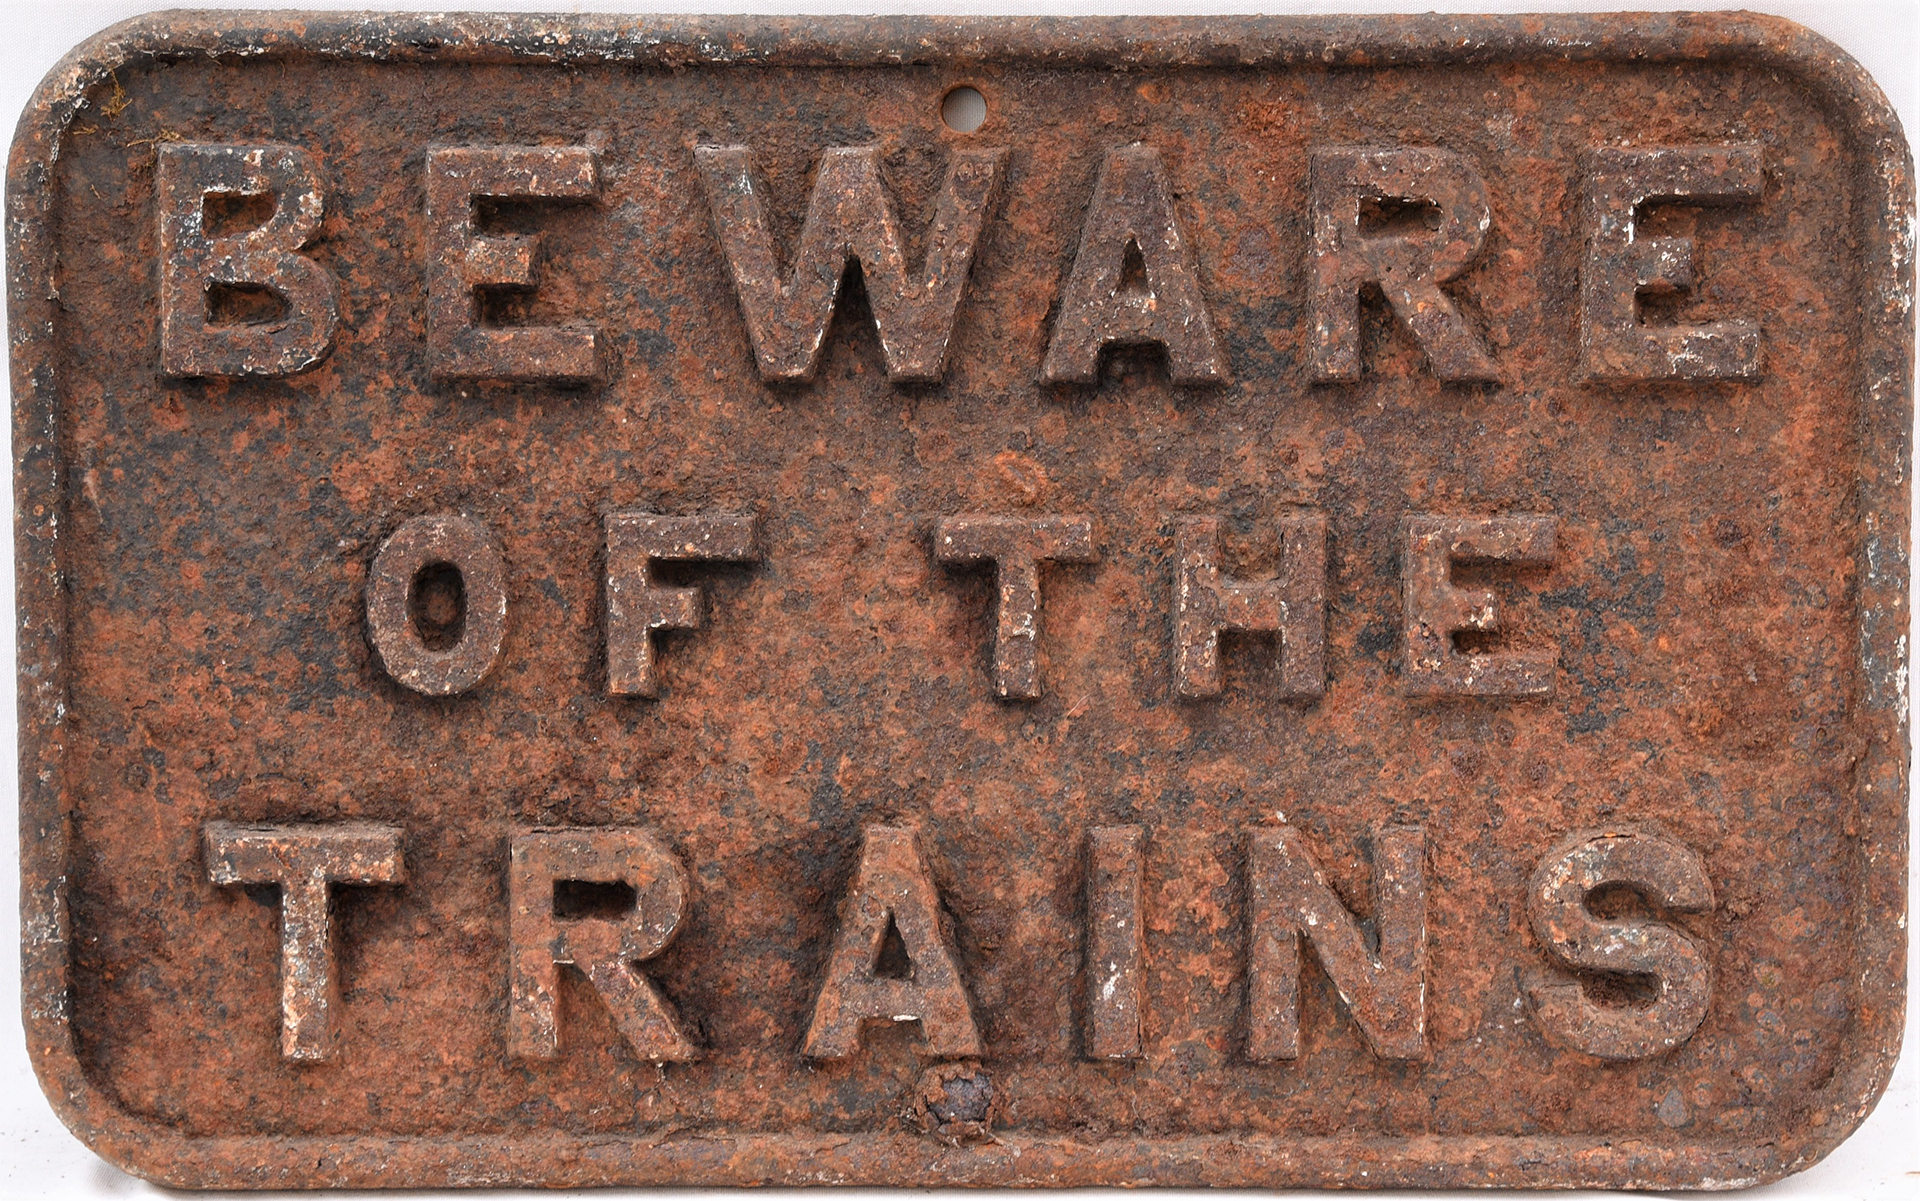 Cheshire Lines Committee cast iron sign. BEWARE OF THE TRAINS. Devoid of paint in original